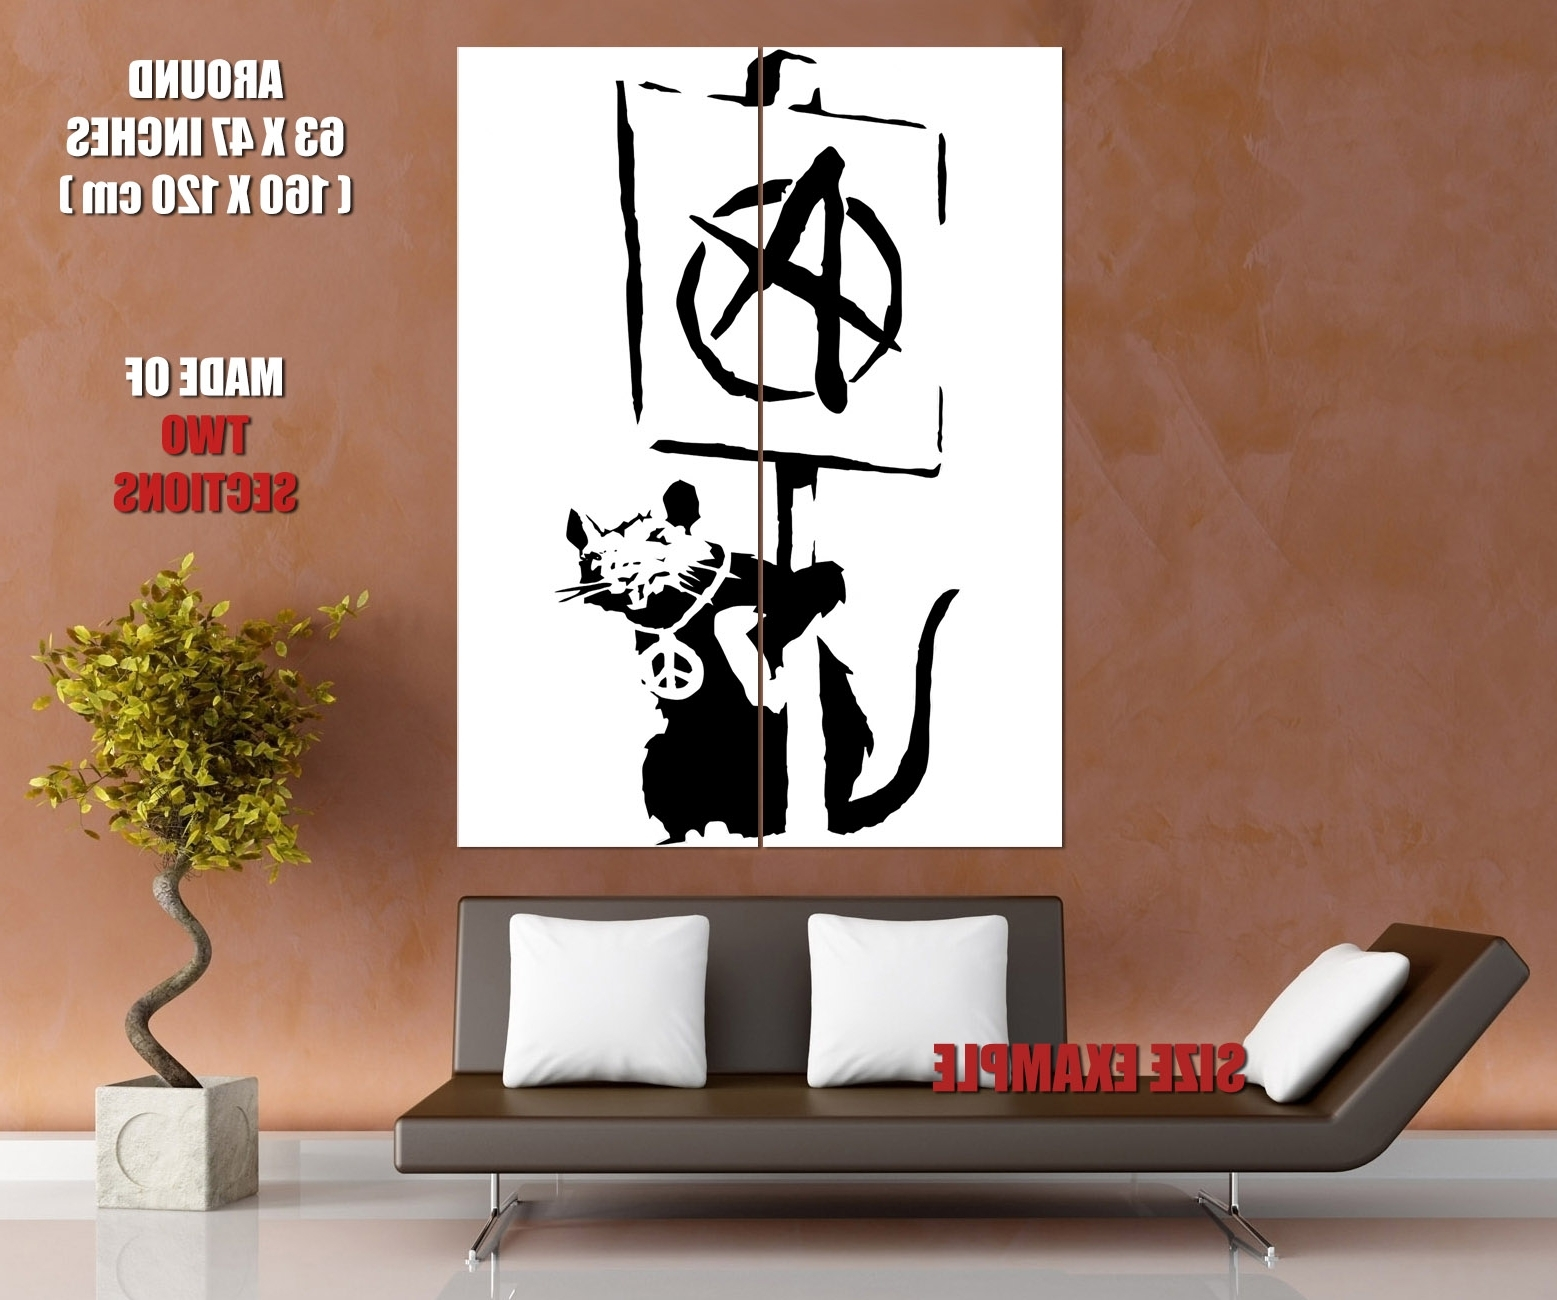 Fashionable Giant Wall Art Intended For Banksy Rat Anarchy Pacifism Cool Graffiti Art Huge Giant Wall Print (View 2 of 20)